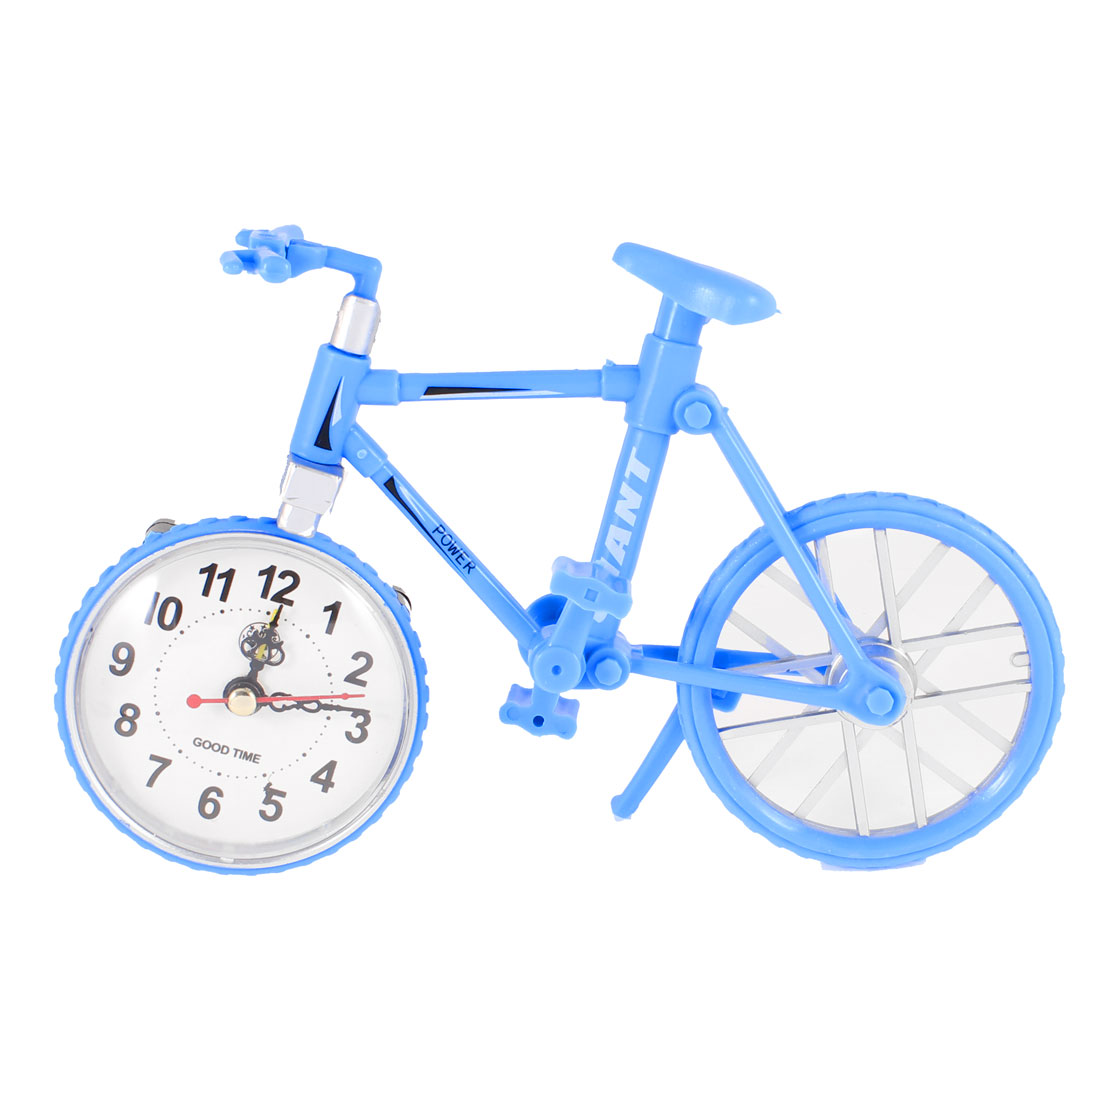 Plastic Bicycle Design Arambic Numbers Dial Desktop Alarm Clock Blue